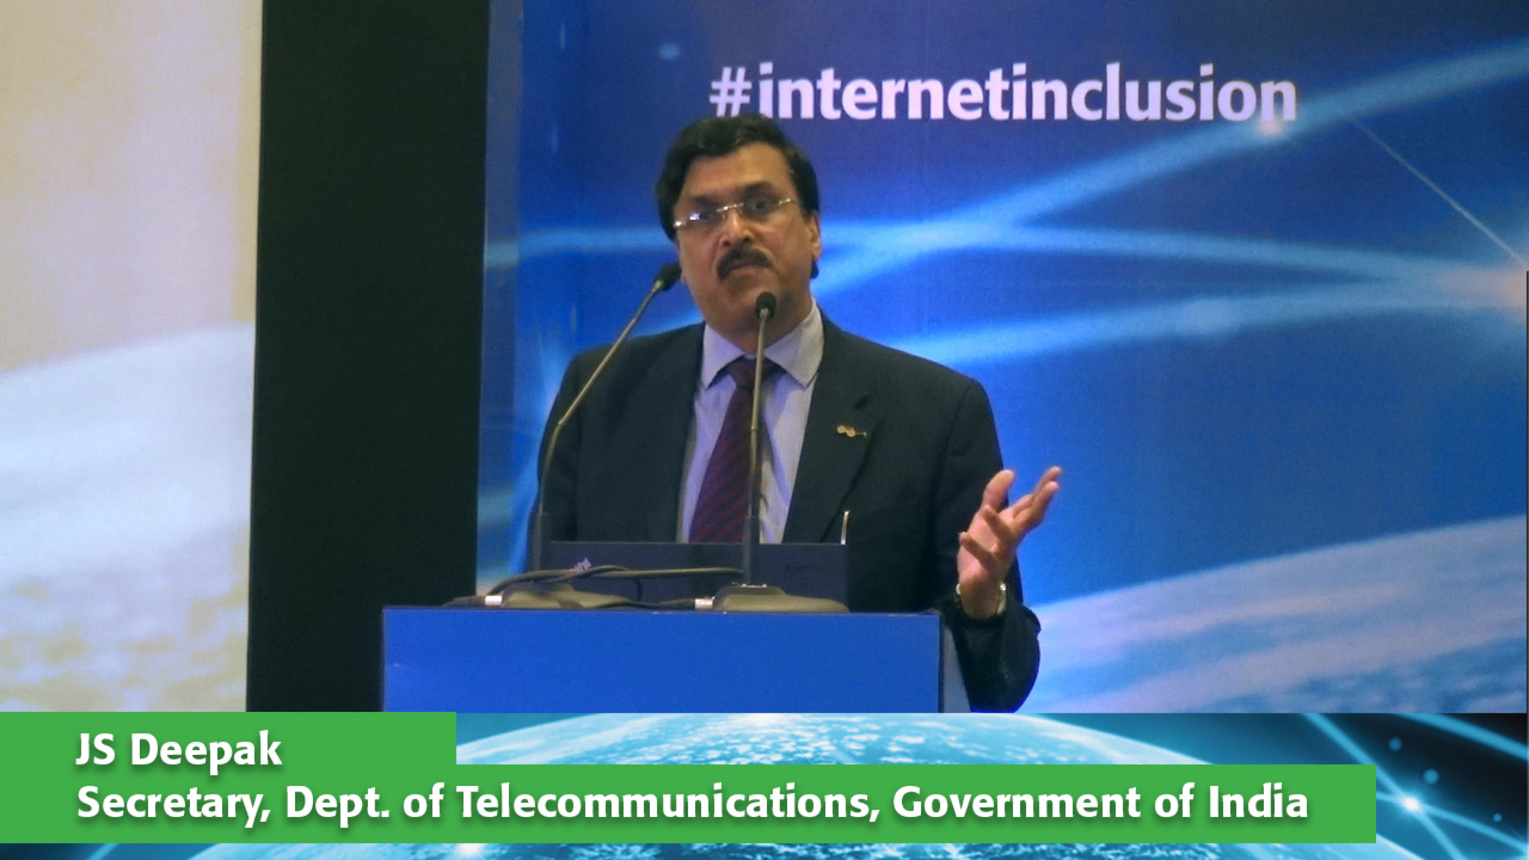 JS Deepak Keynote at Internet Inclusion: Advancing Solutions, Delhi, 2016